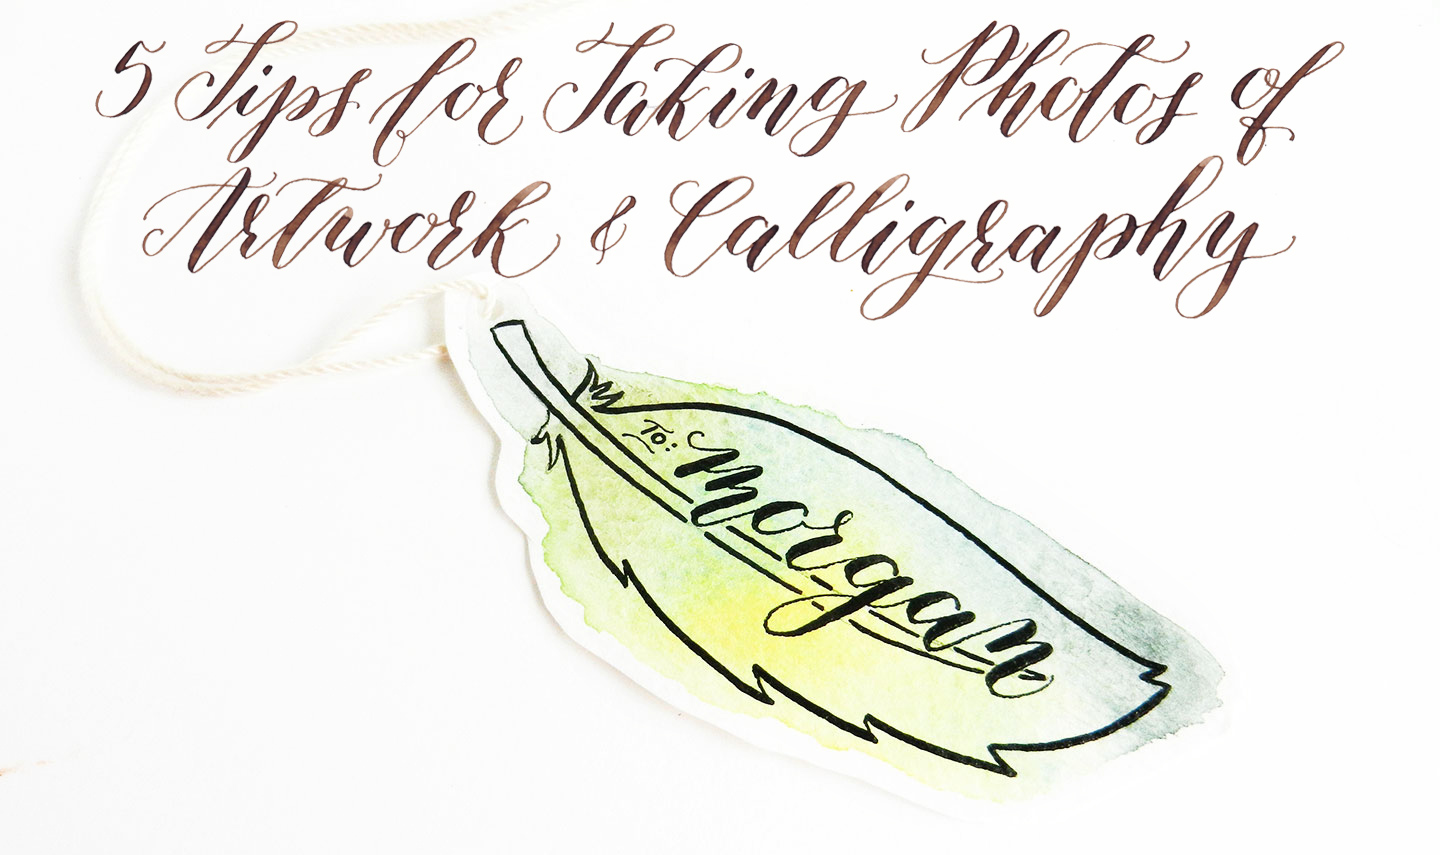 Tips for Taking Photos of Artwork and Calligraphy | The Postman's Knock